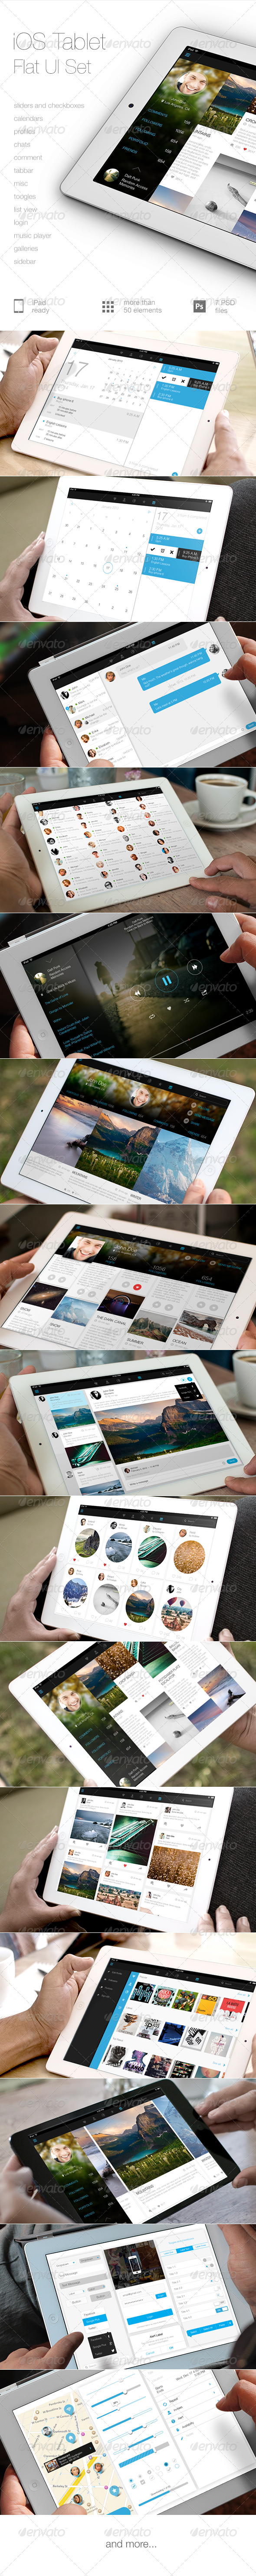 GraphicRiver iOS Tablet Flat UI Set 5403958